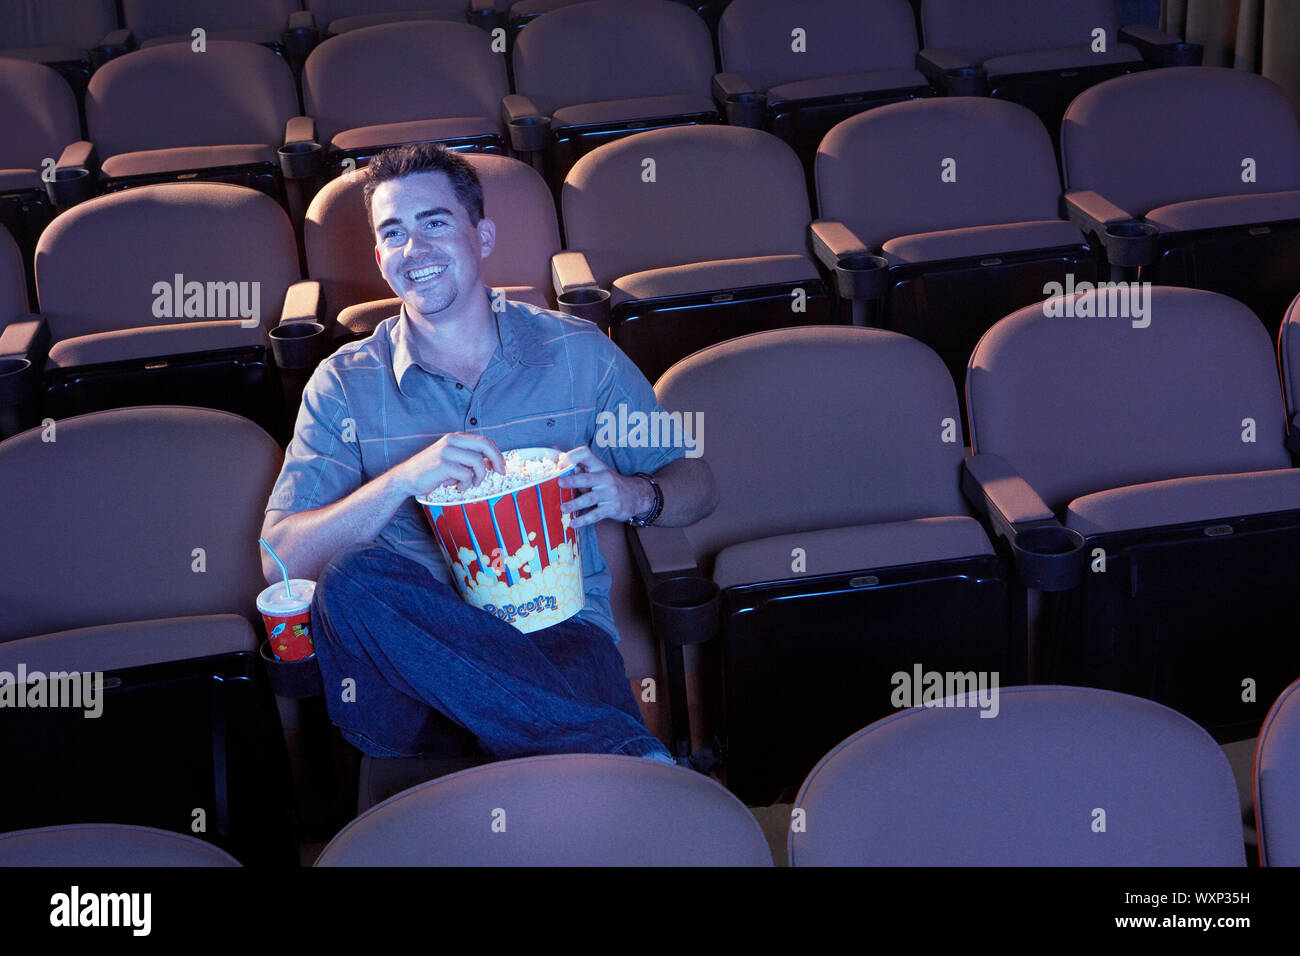 Man Watching Movie in Empty Theater Stock Photo